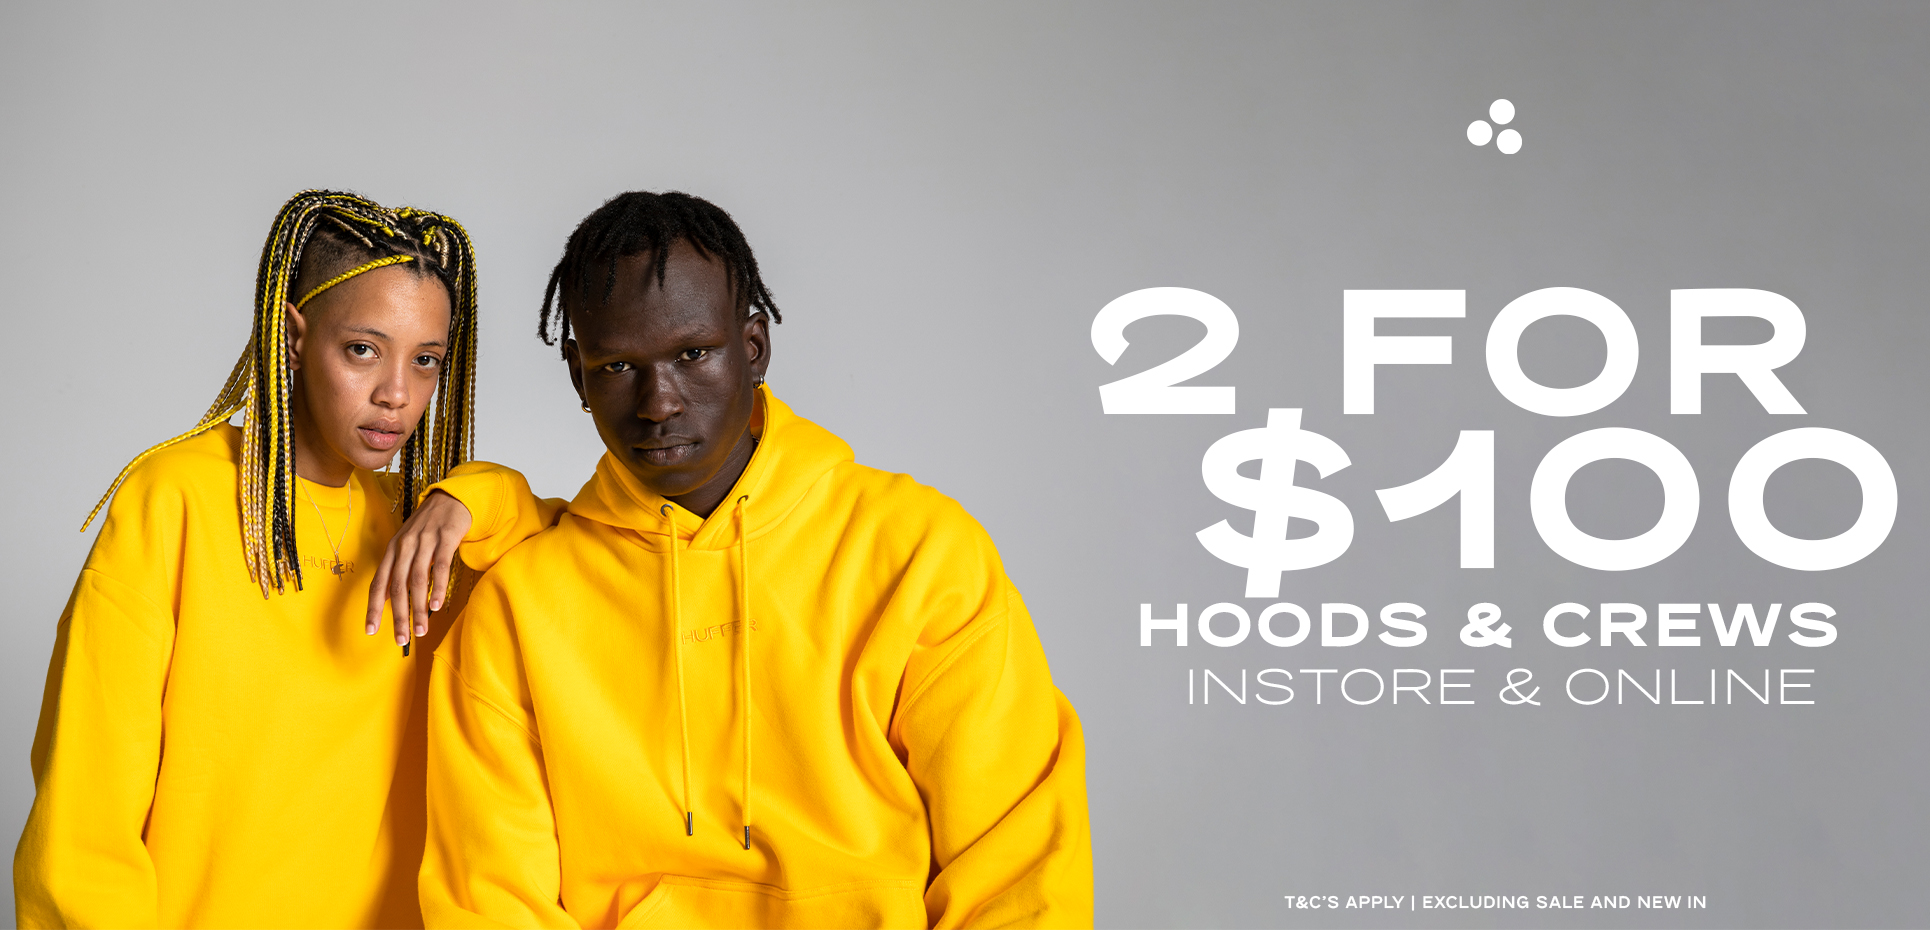 2 for $100 Hoods and Crews